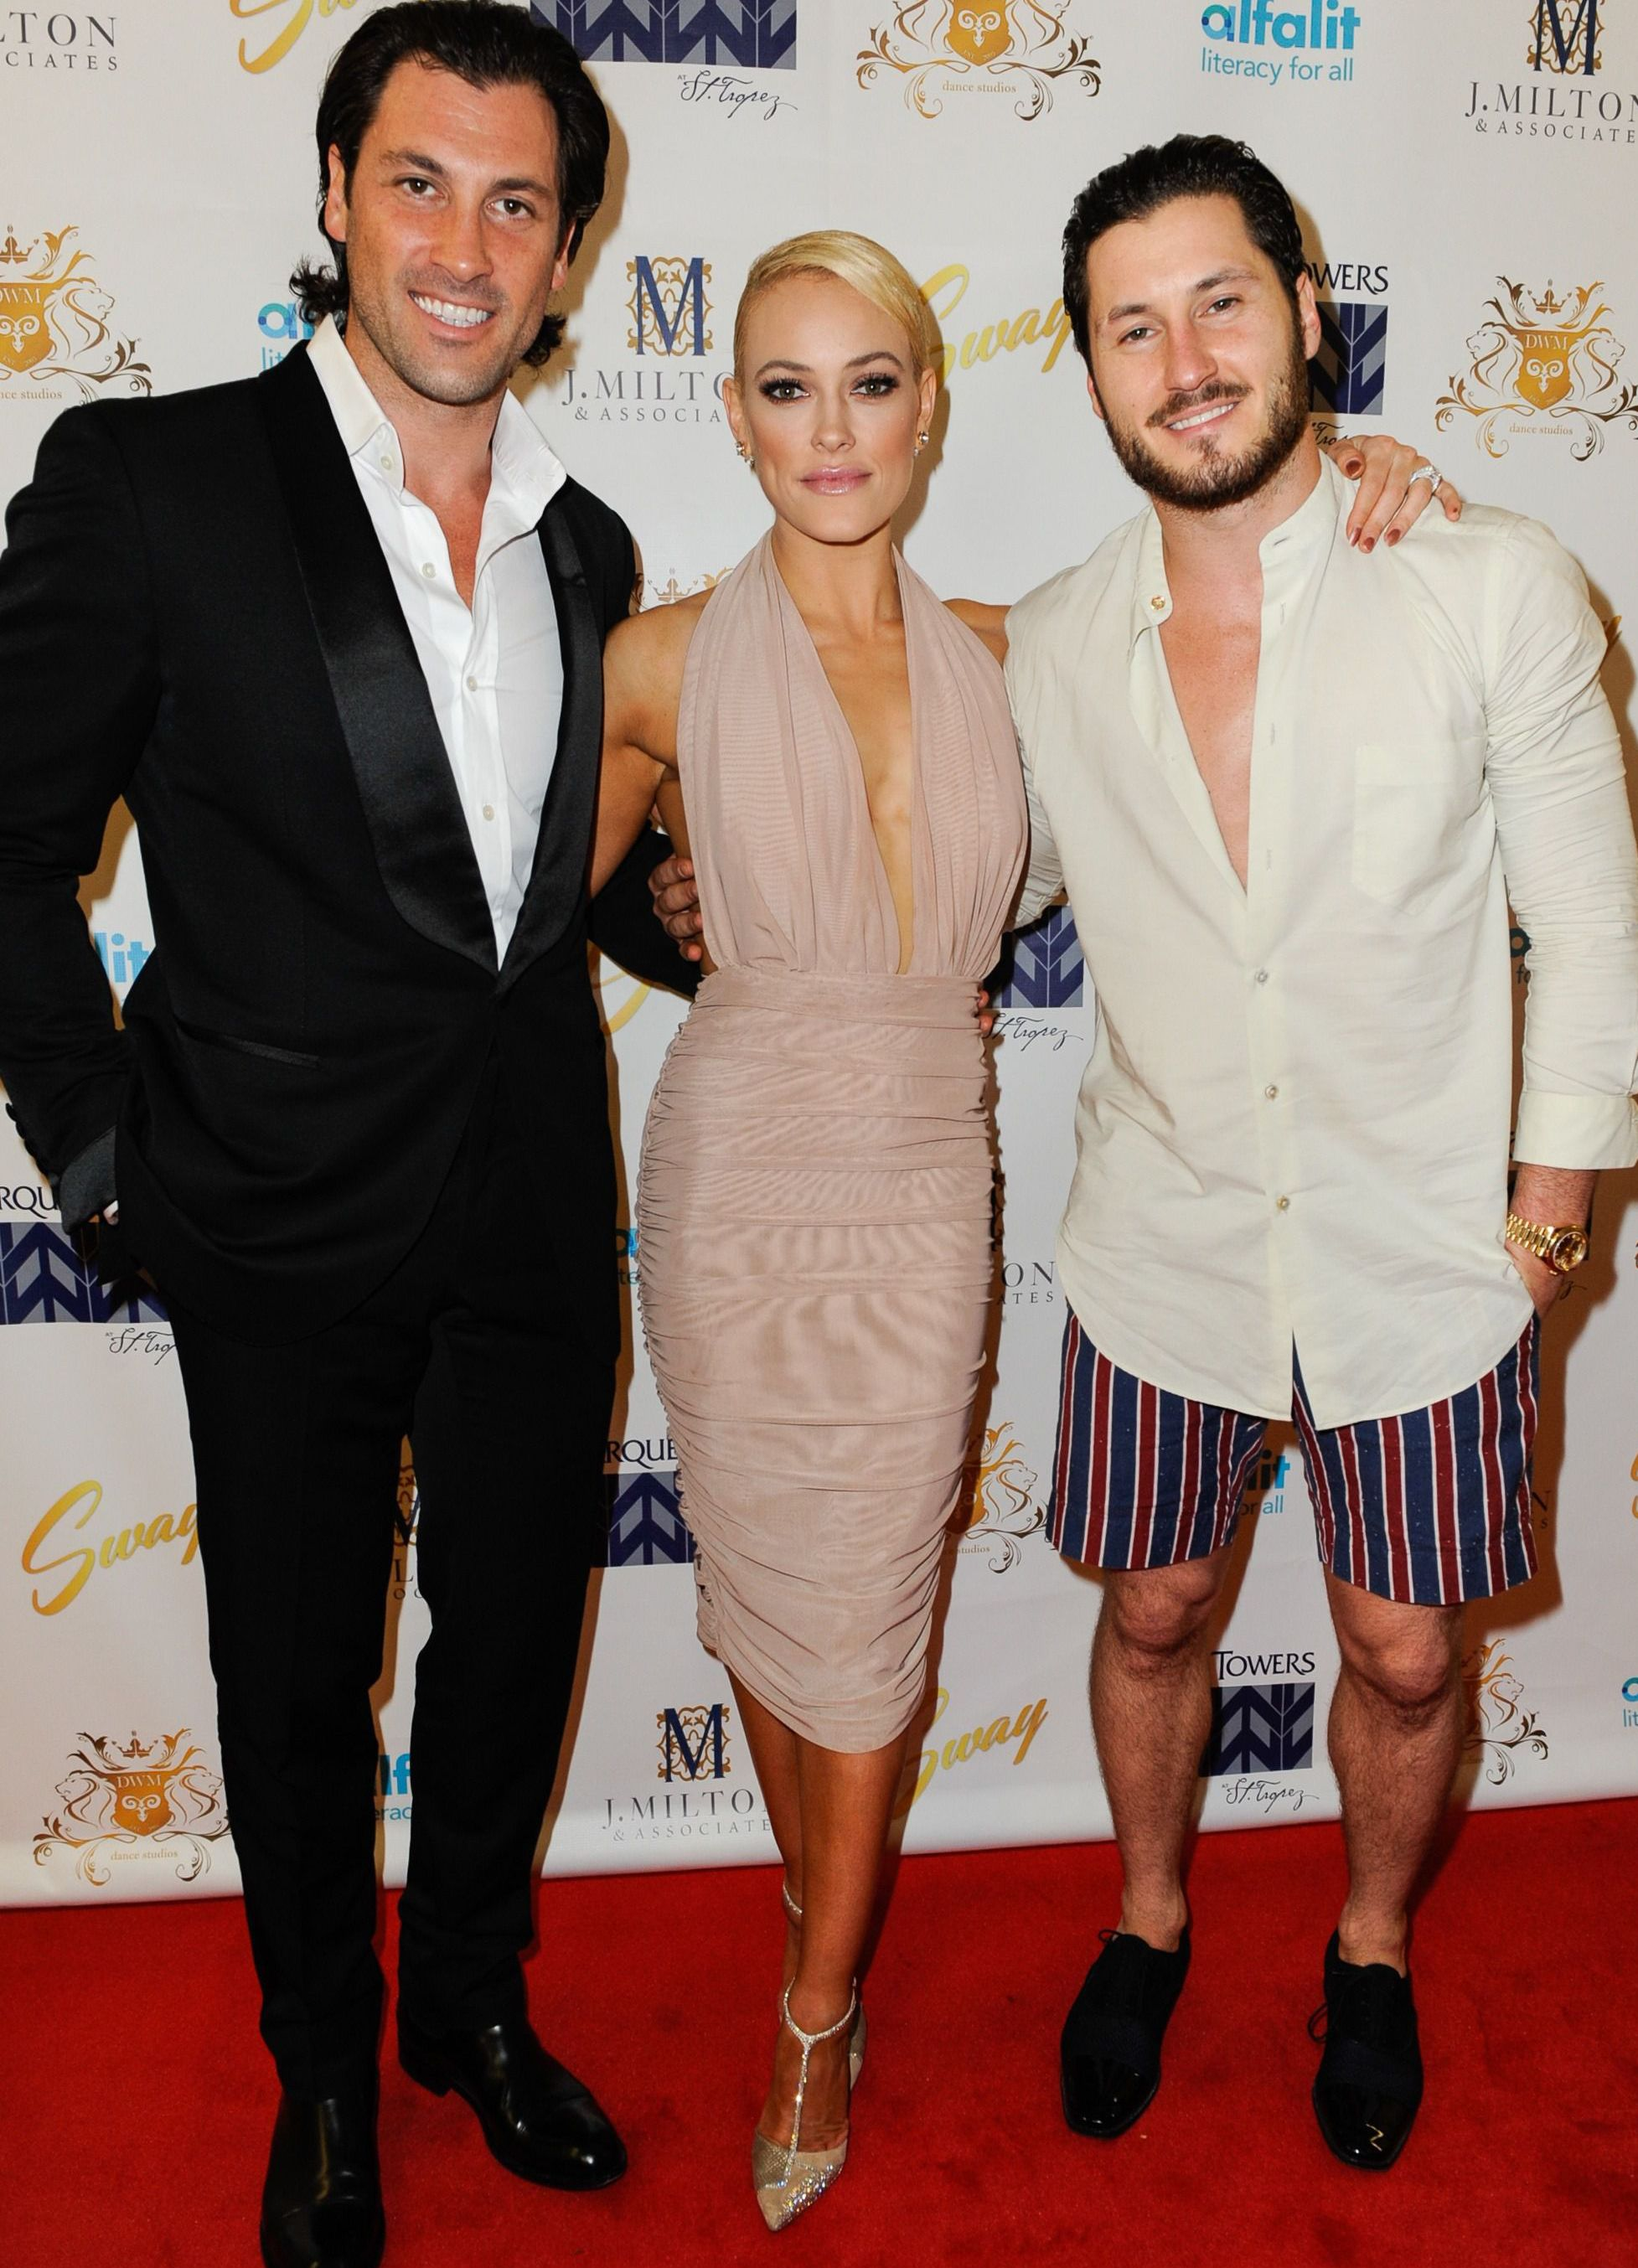 aks chmerkovskiy peta murgatroyd and valentin chm 1454320524 dwts' pro val chmerkovskiy sued for fat shaming down's girl the,Val Chmerkovskiy Down Syndrome Meme